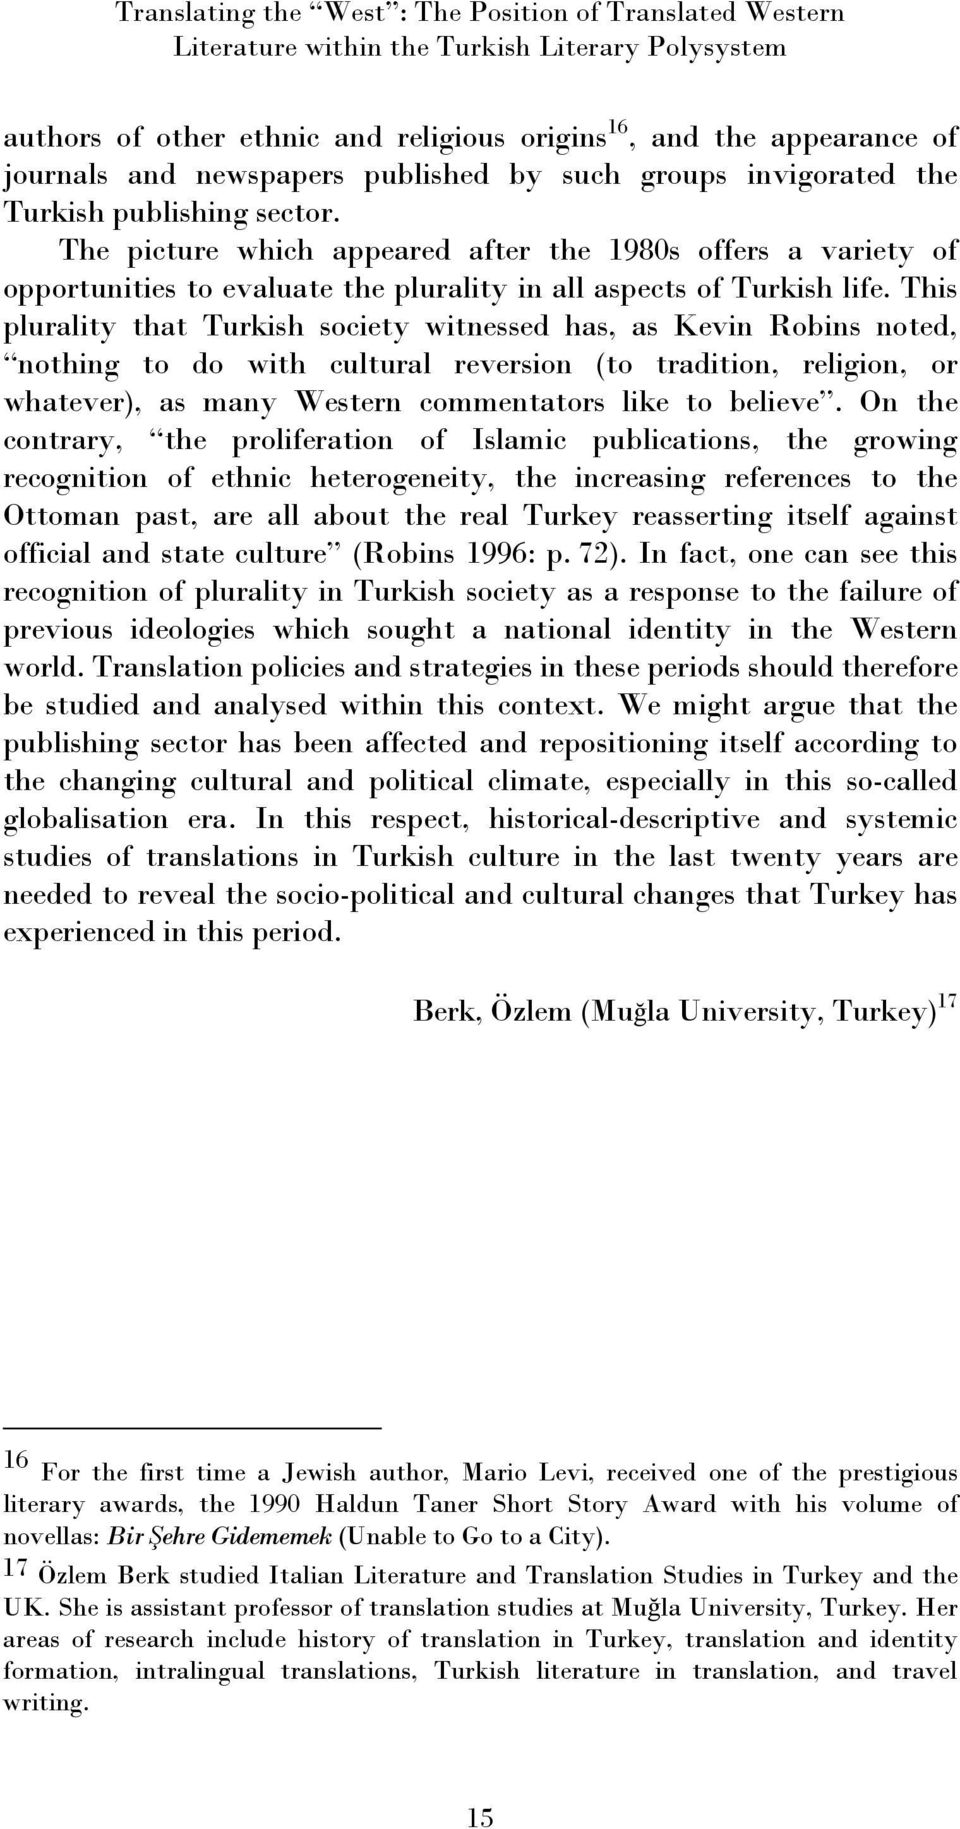 The picture which appeared after the 1980s offers a variety of opportunities to evaluate the plurality in all aspects of Turkish life.